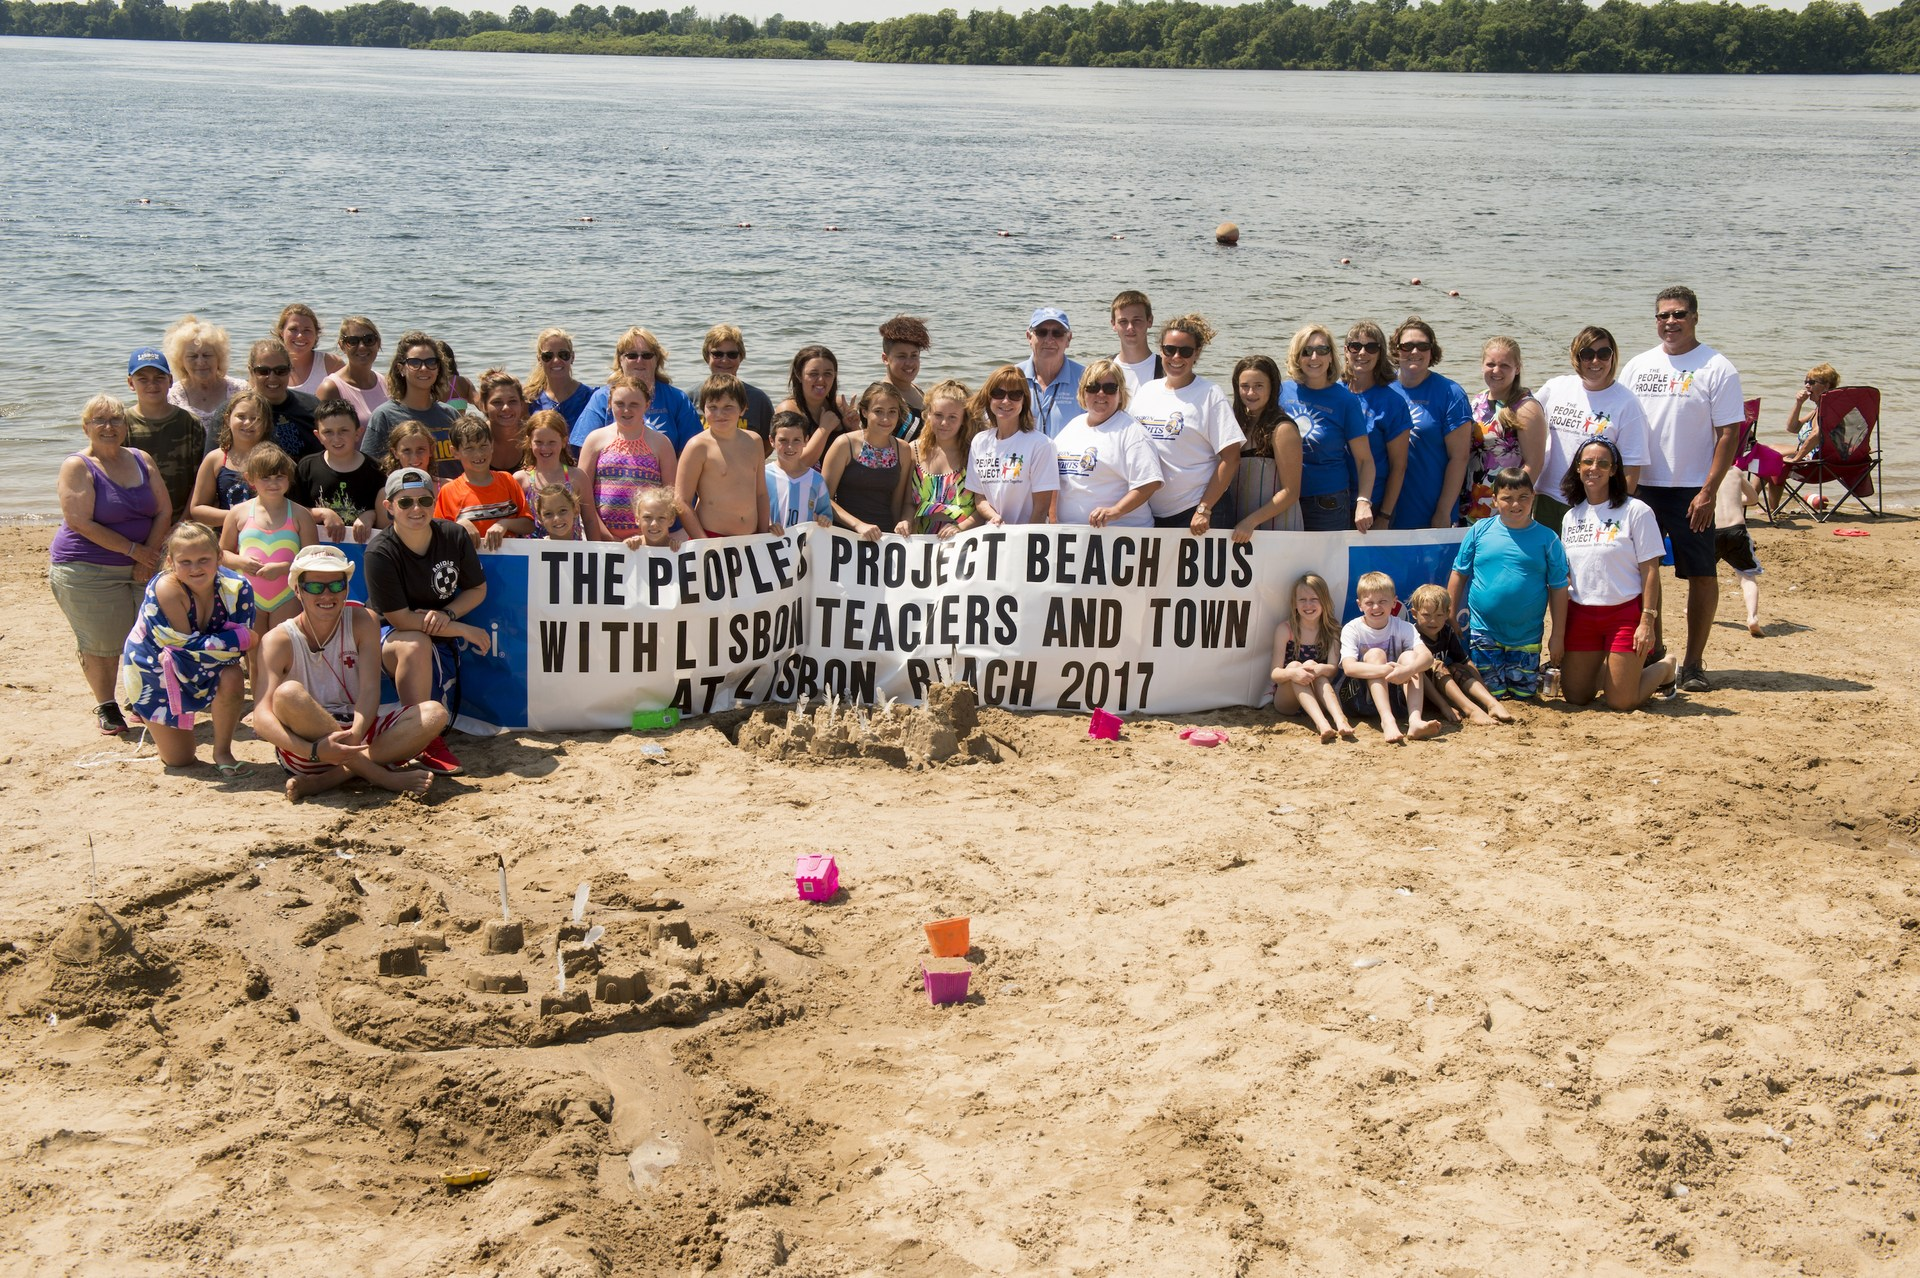 large group of adults and kids standing together on a beach